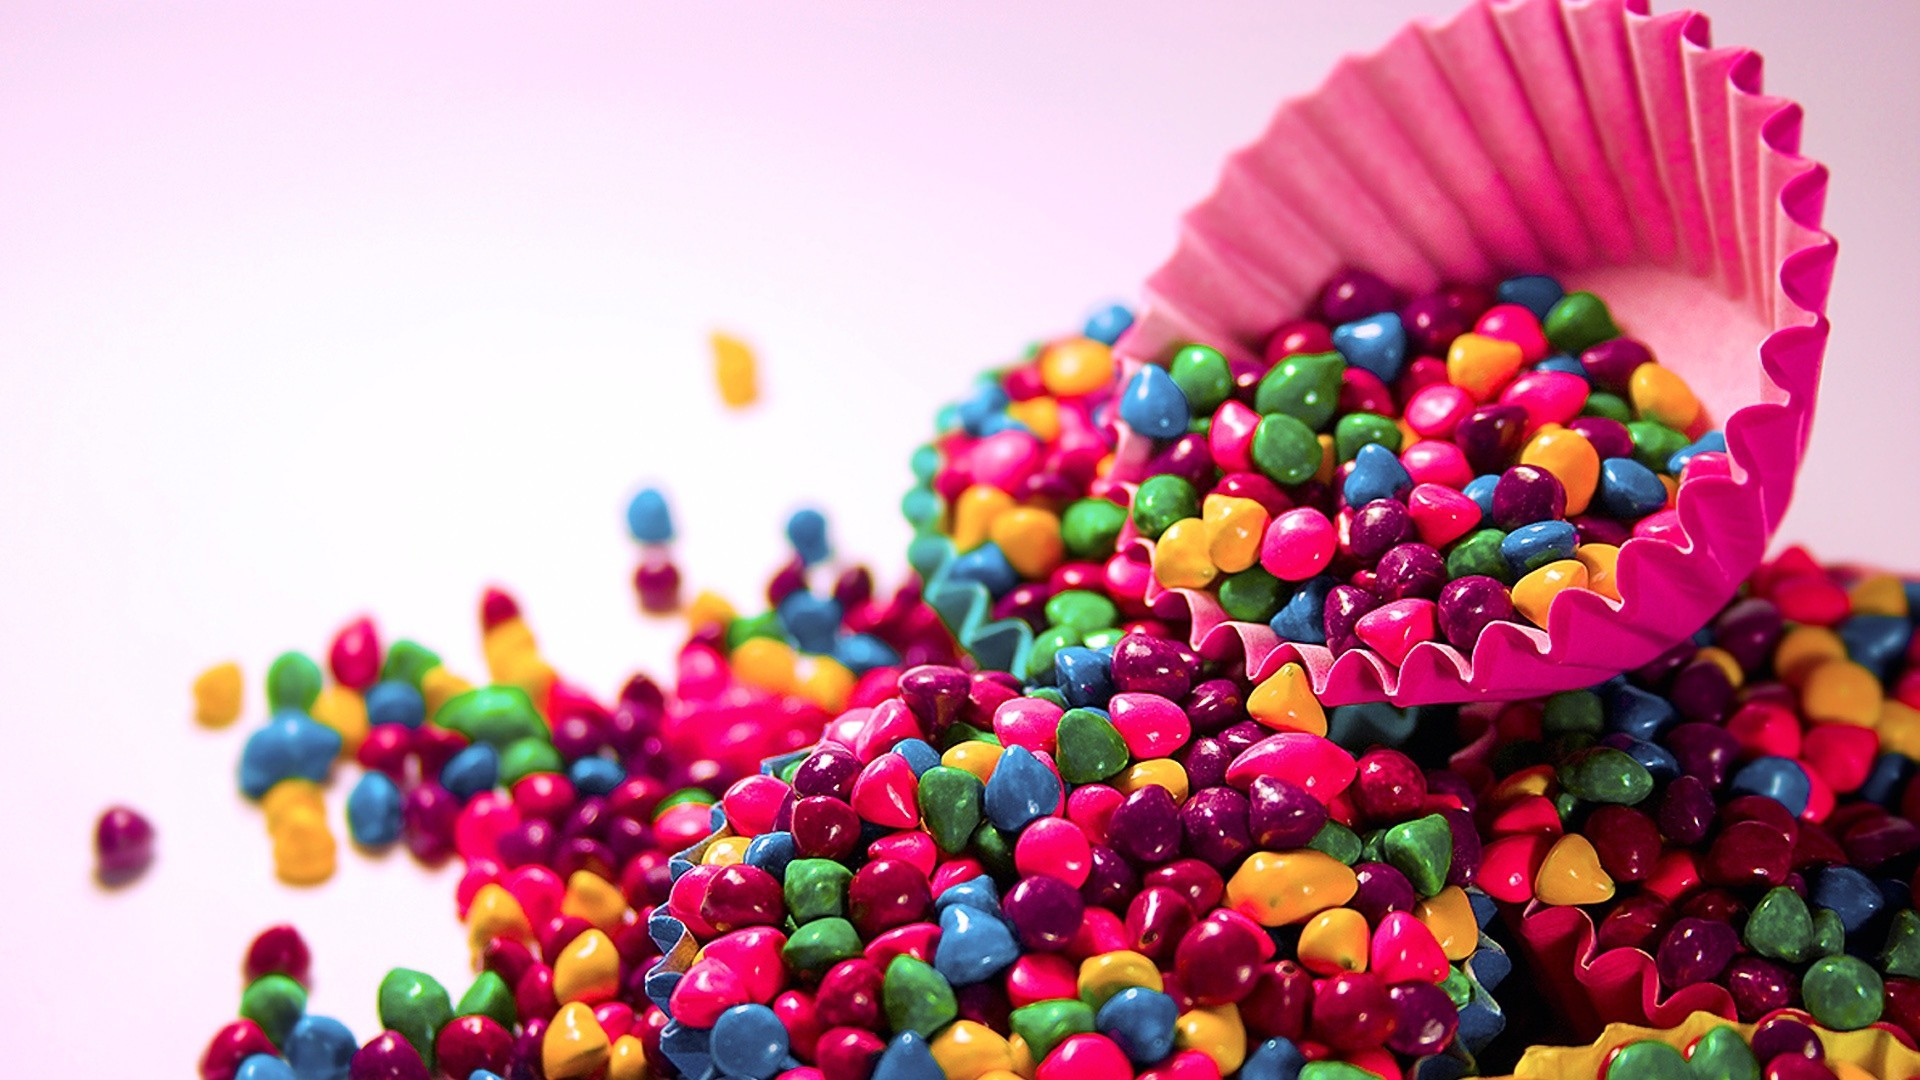 Colorful Candy Wallpaper